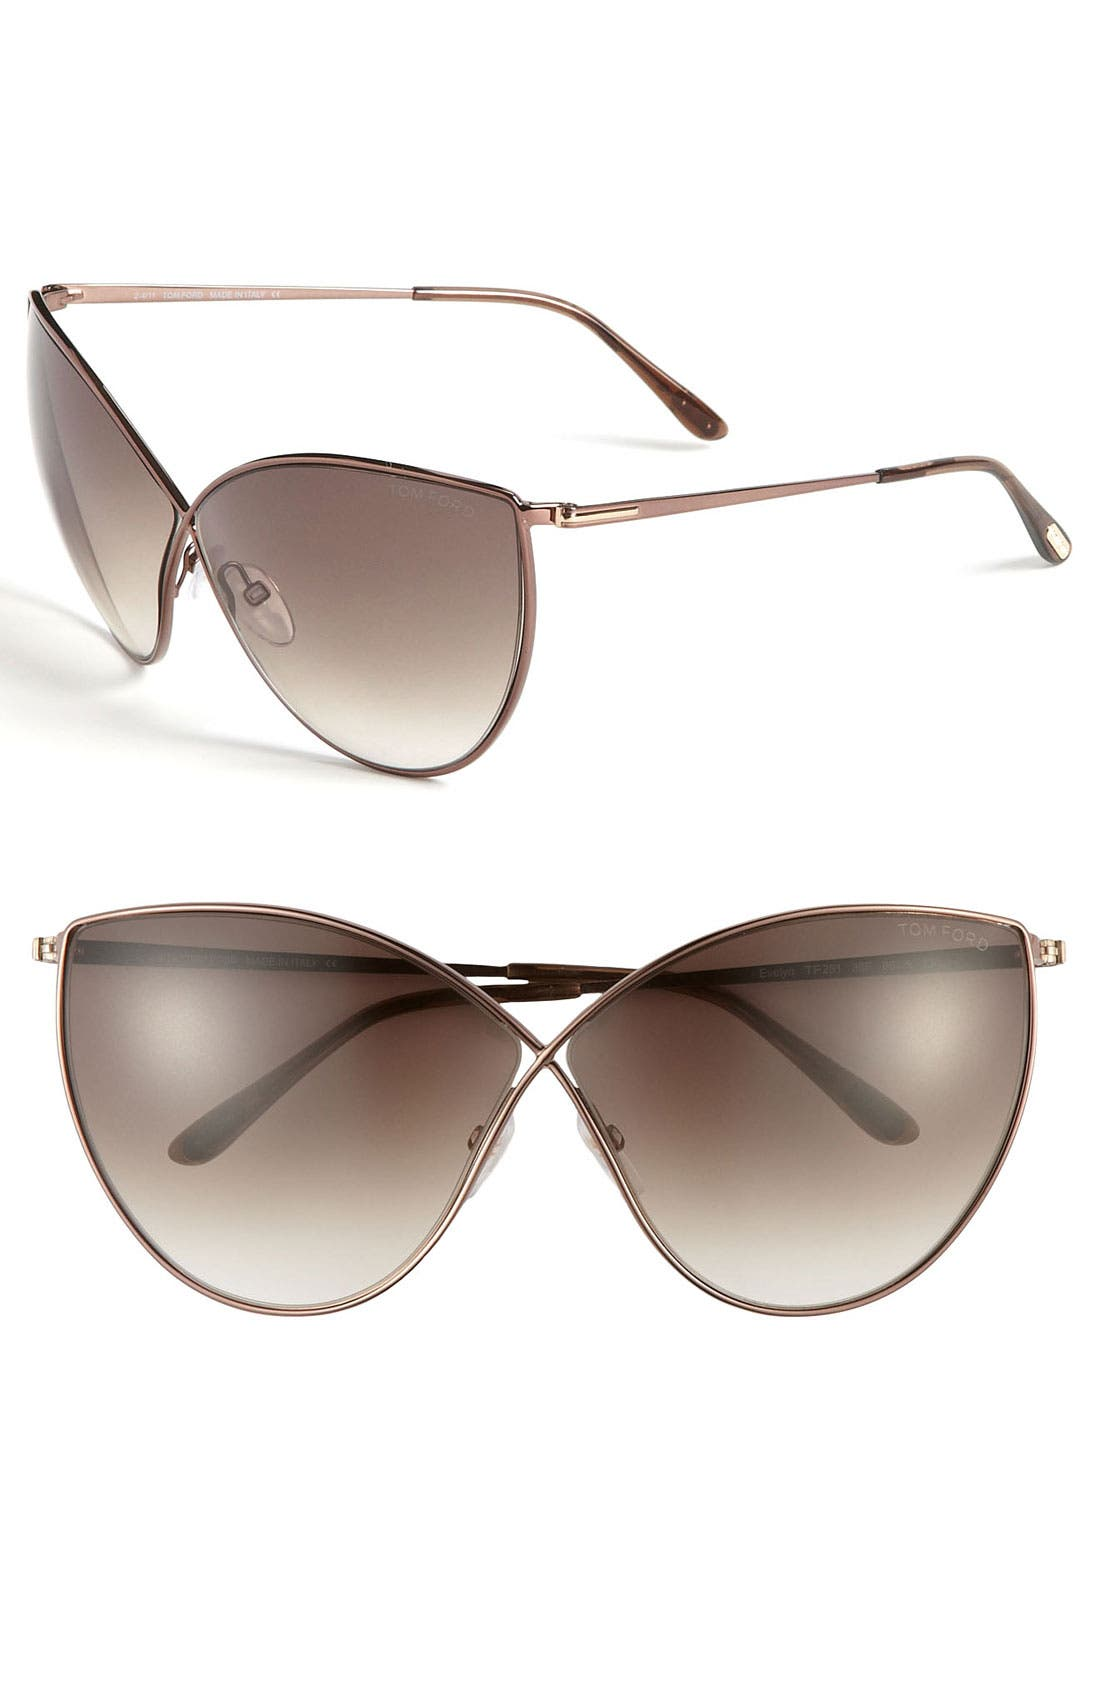 Alternate Image 1 Selected - Tom Ford 'Evelyn' 66mm Sunglasses